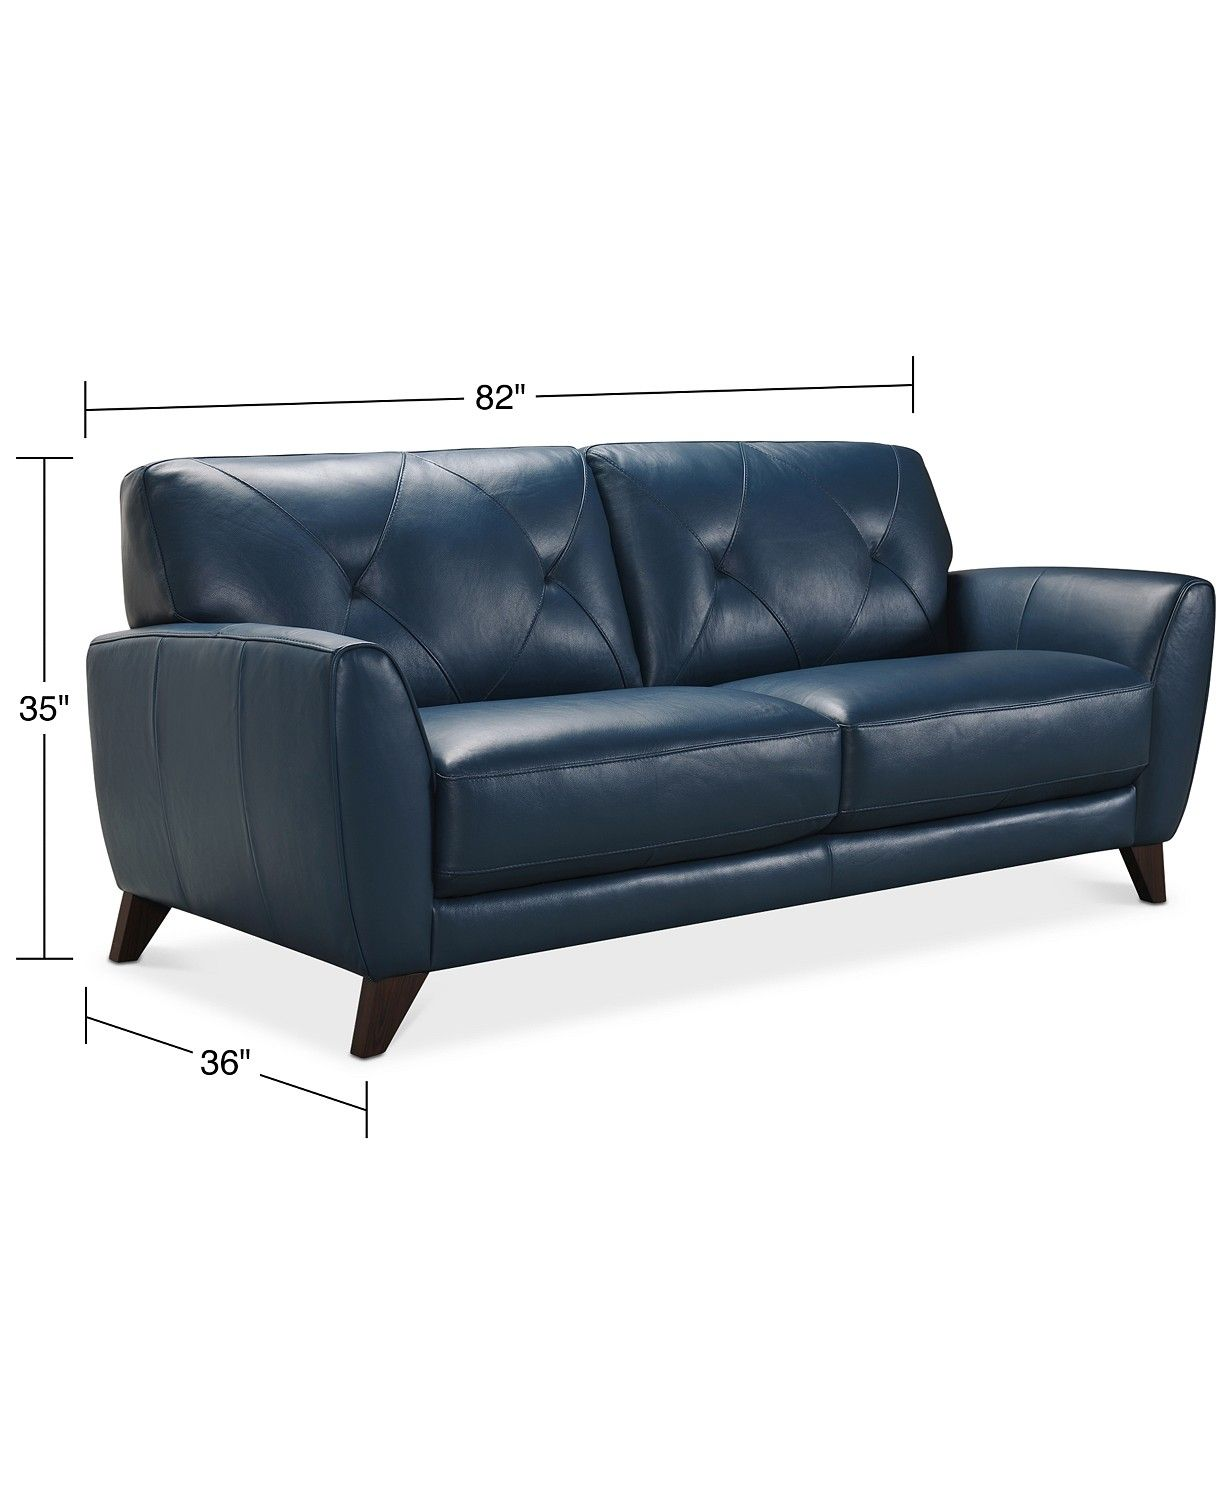 Furniture Myia 82 Quot Leather Sofa Created For Macy S